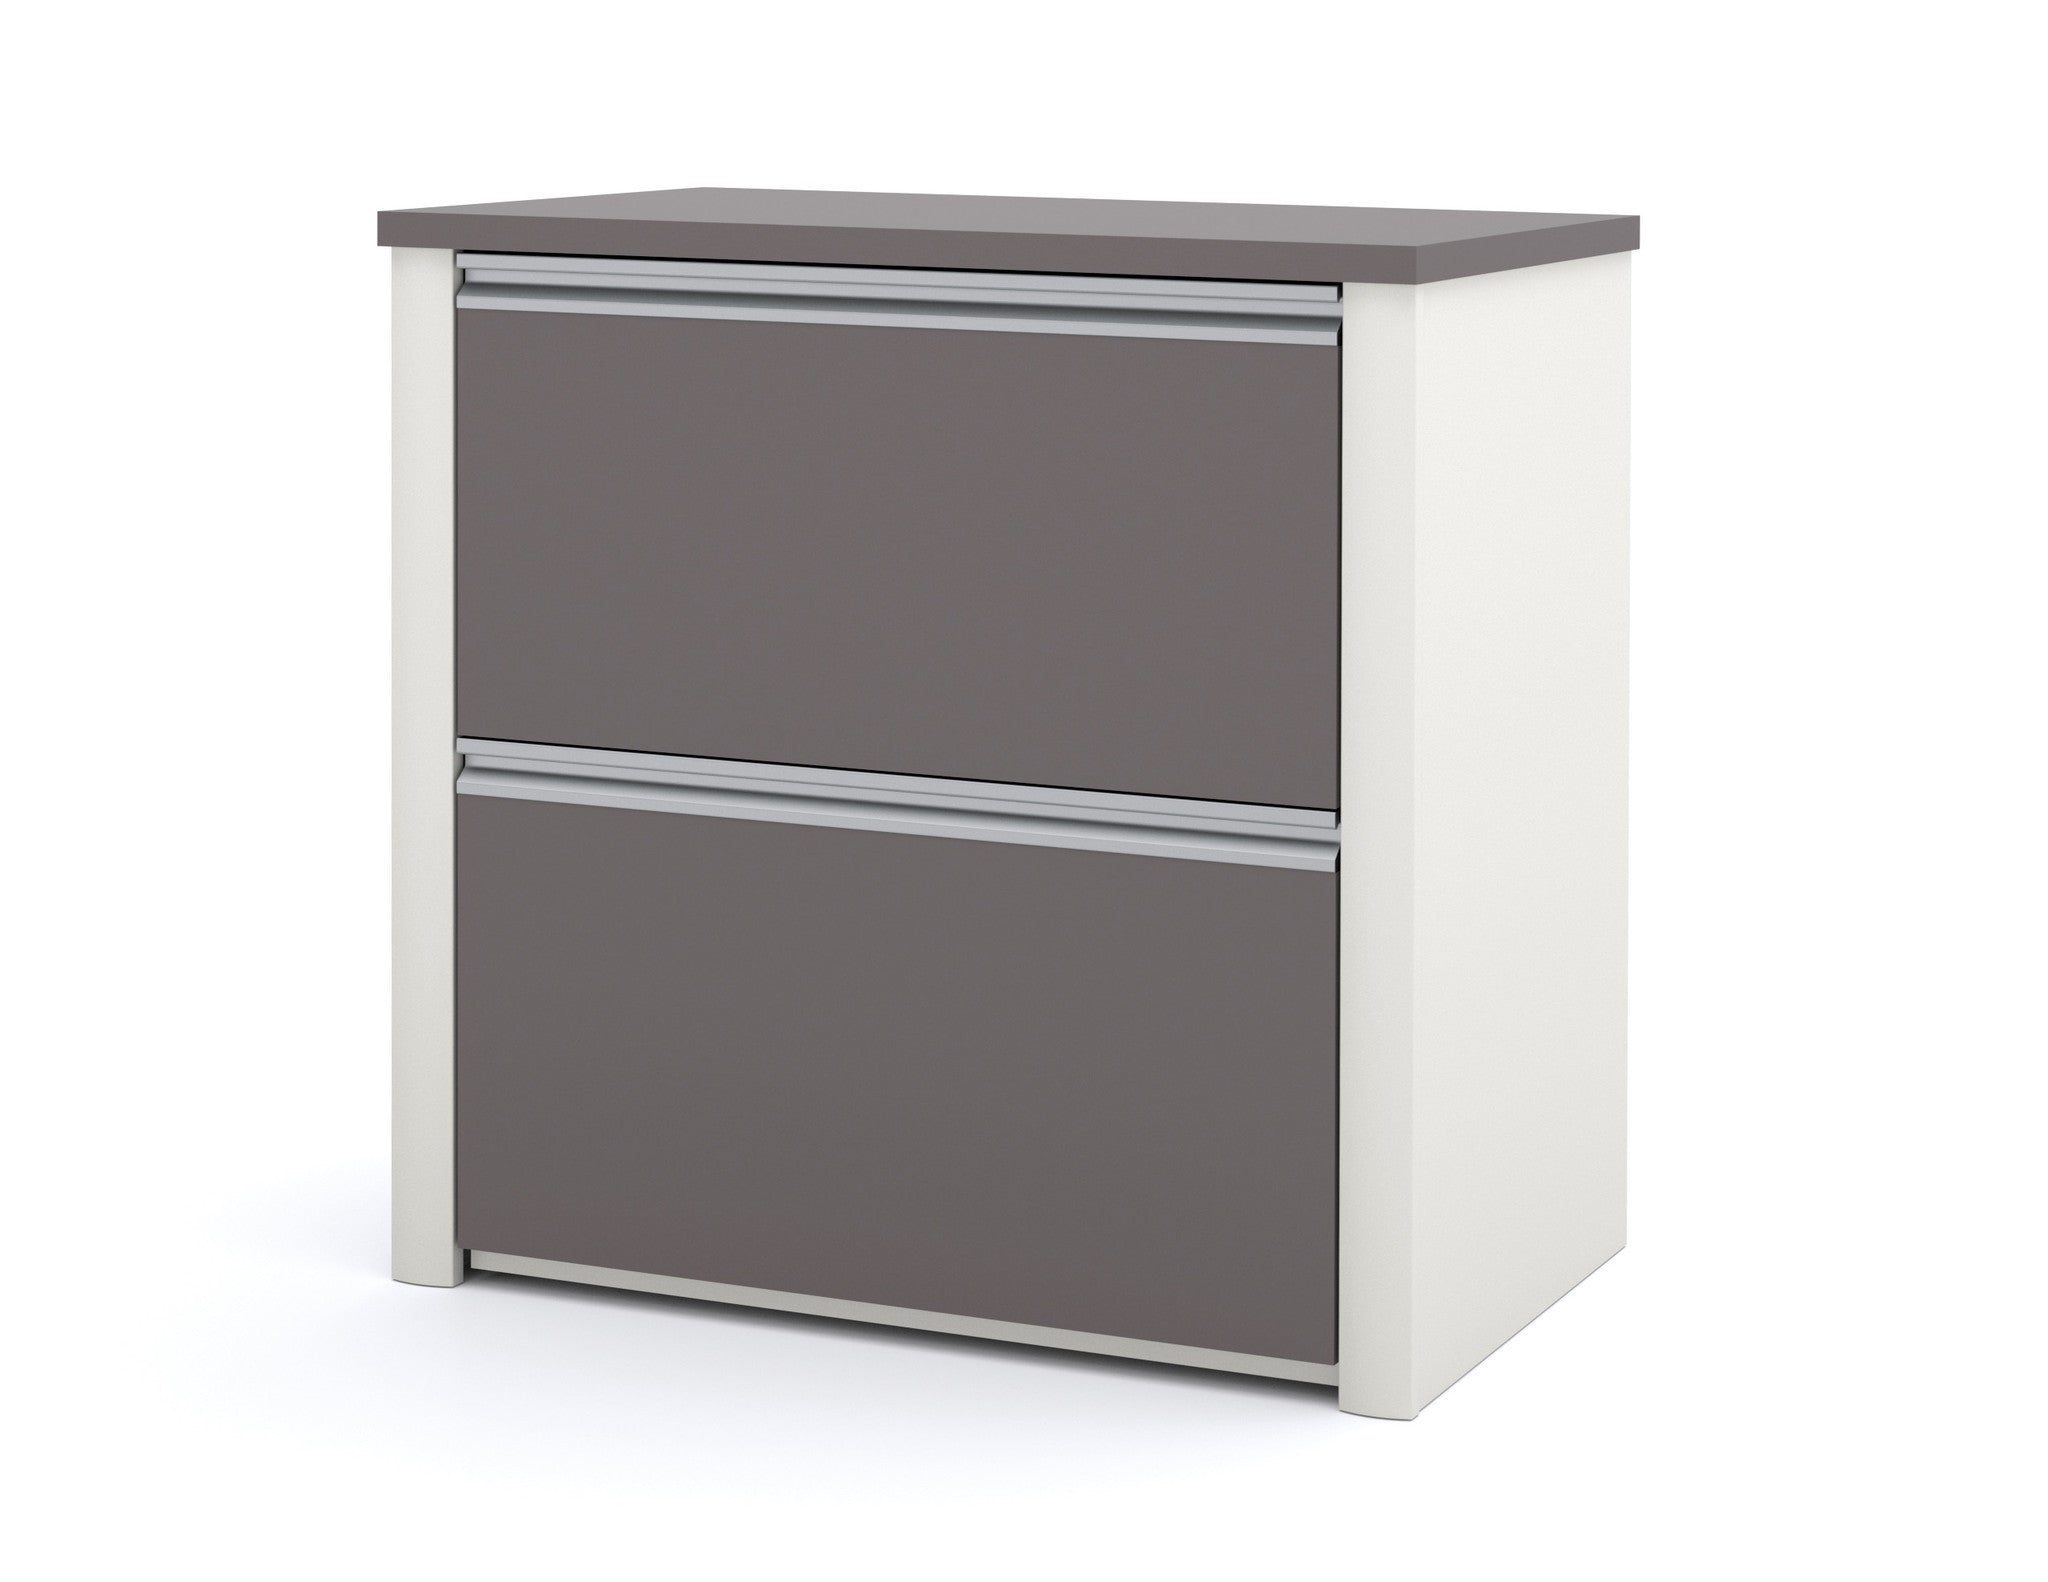 garsonl item l with trim shaped cabinet filing drawers bright height desk coaster garson products dunk threshold width